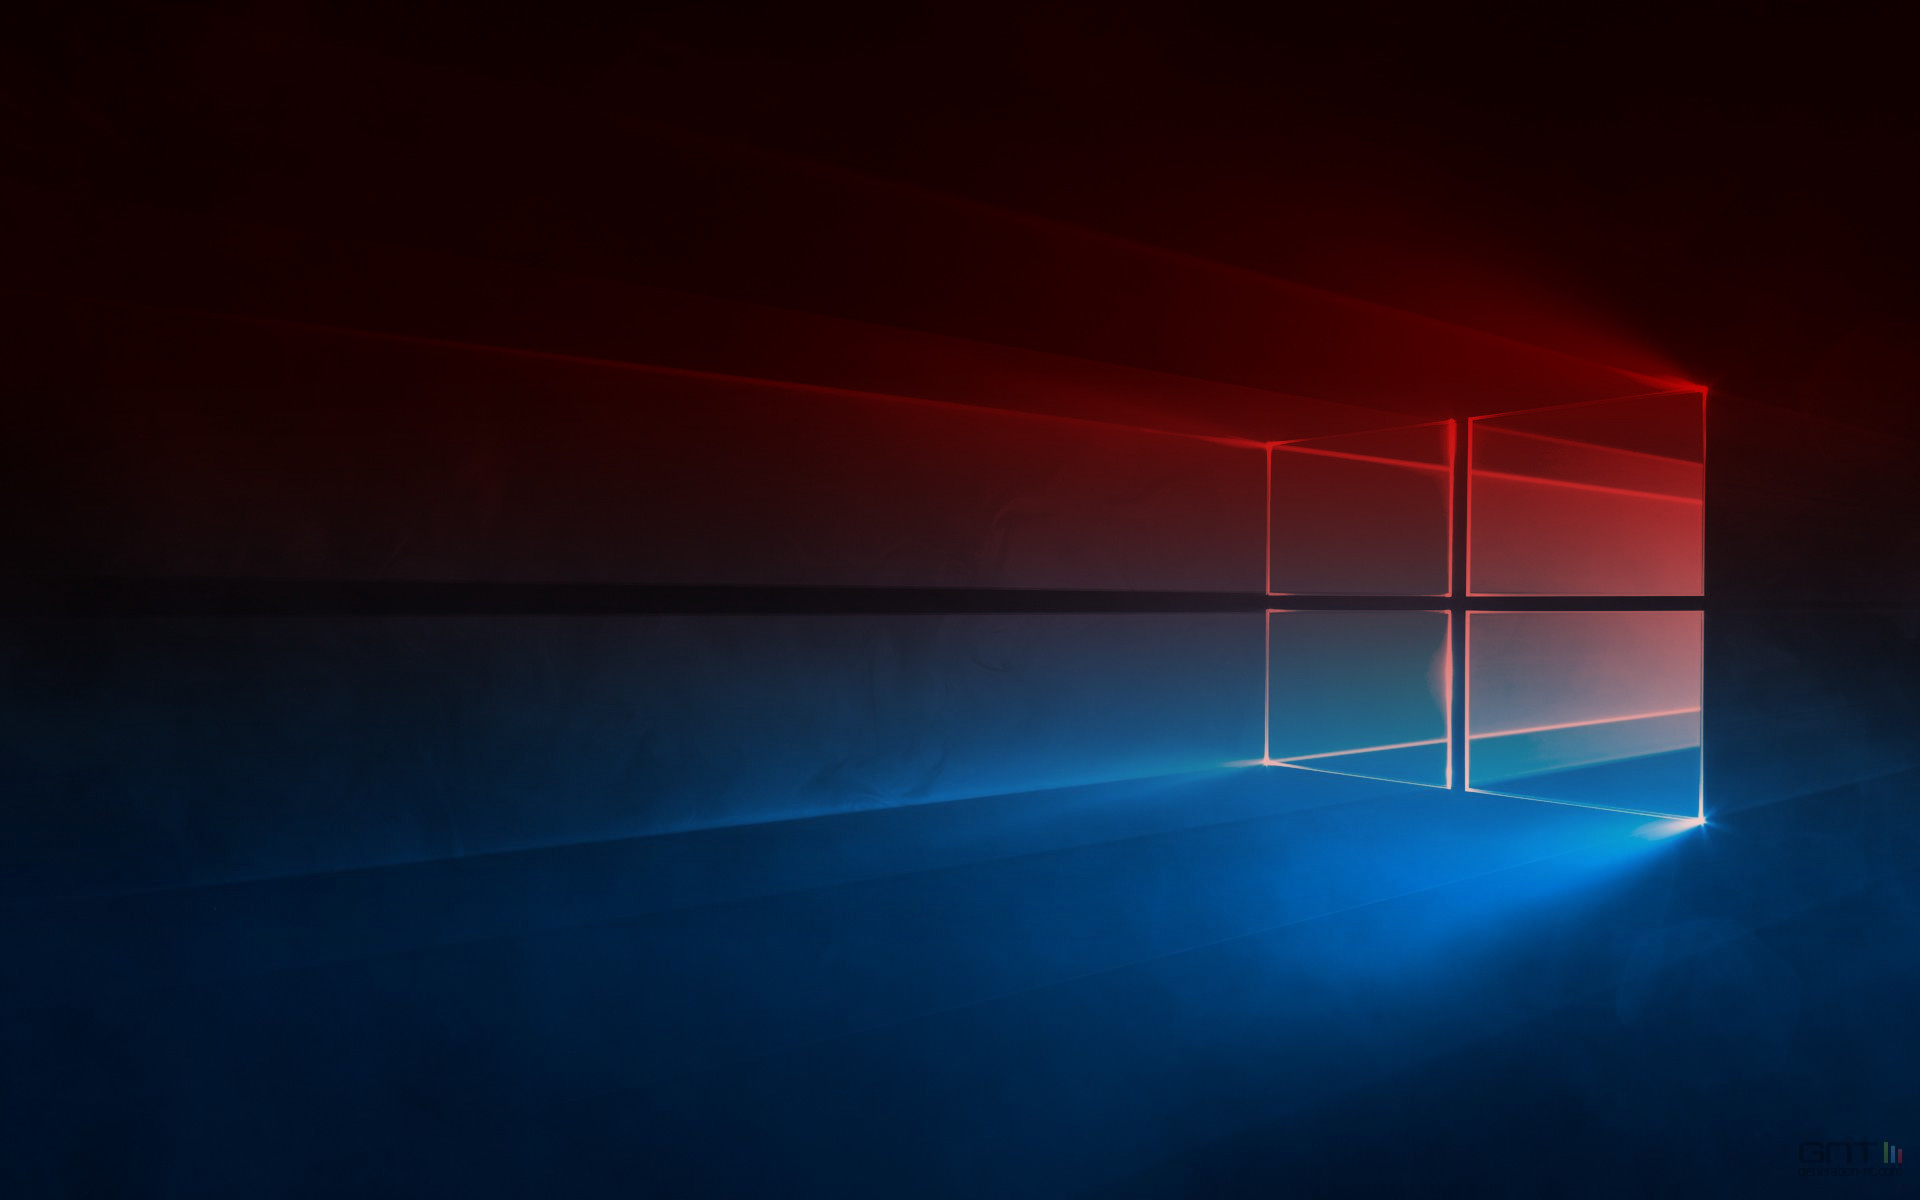 Windows 10 Redstone Wallpaper 85 Images